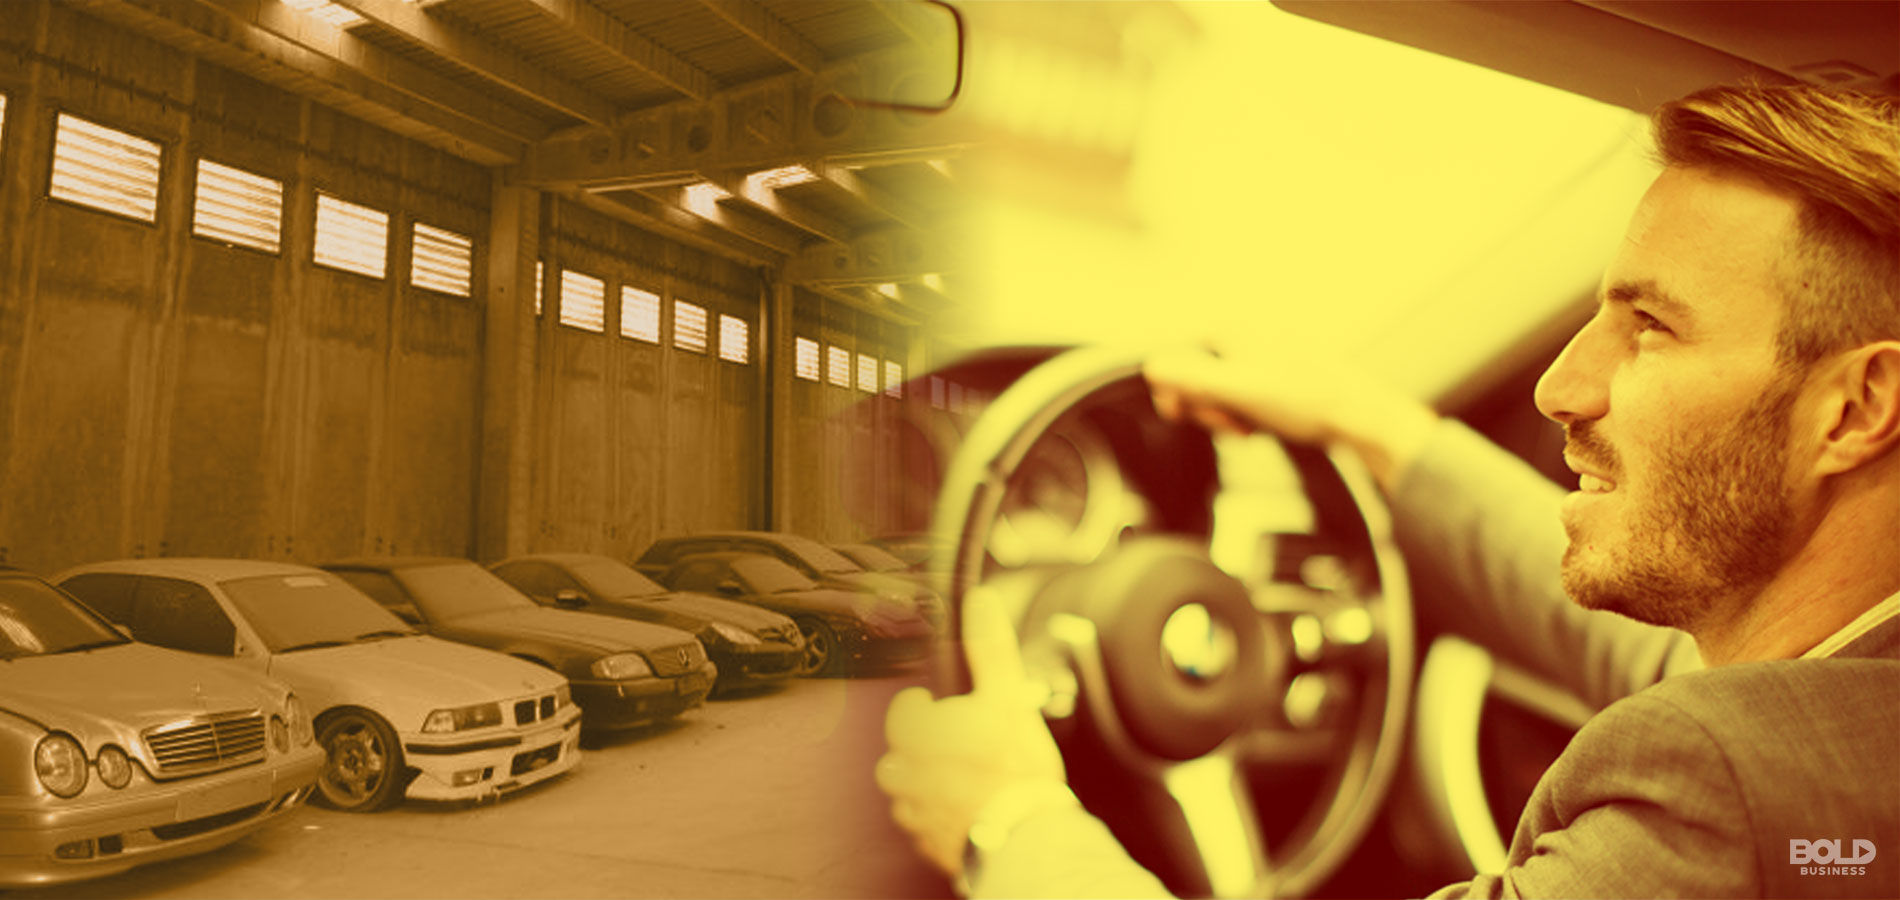 Split Image: dusty cars being stored in a garage on left, man driving an automobile on the right